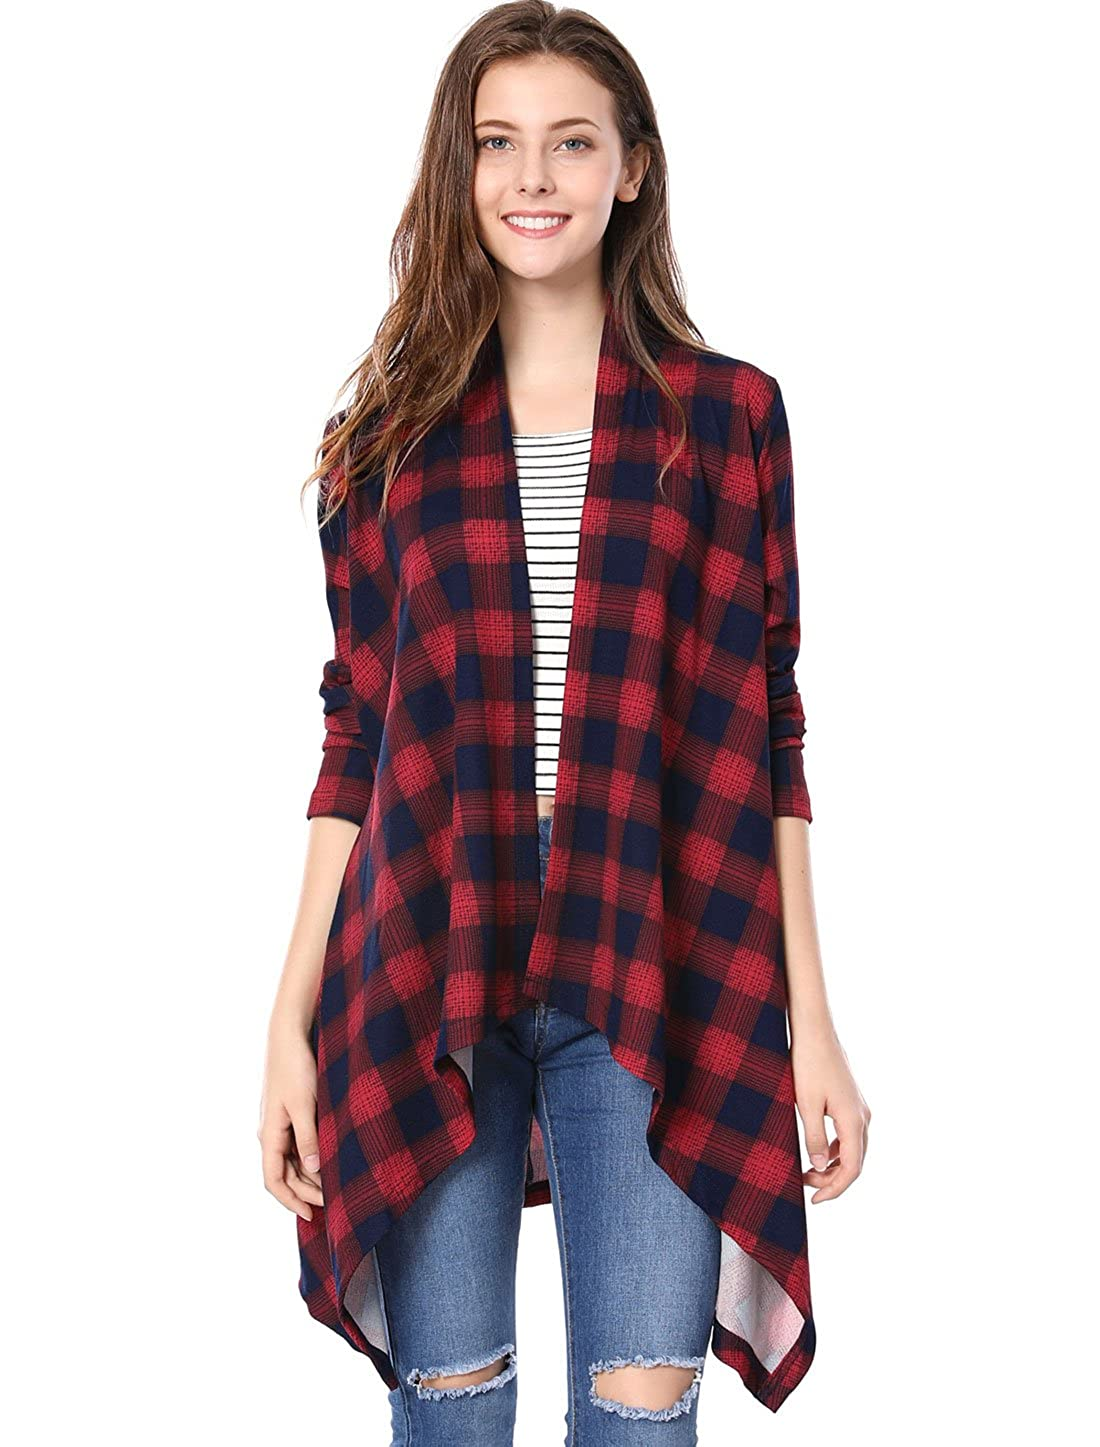 Allegra K Women's Hanky Hem Open Front Waterfall Loose Plaid Cardigan a17120700ux0350